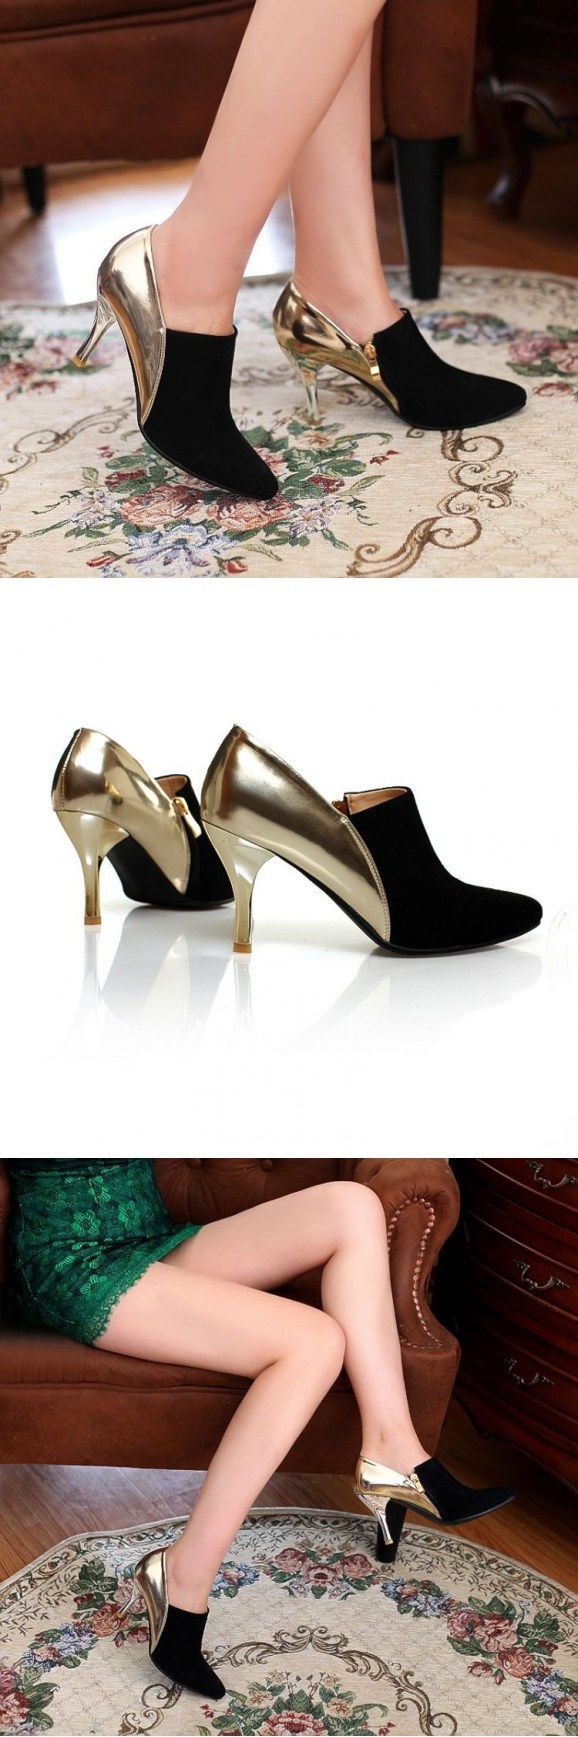 Ebony Velvety Rotters Women Vintage Steel Sequined Pinstripe Evening Shoes…